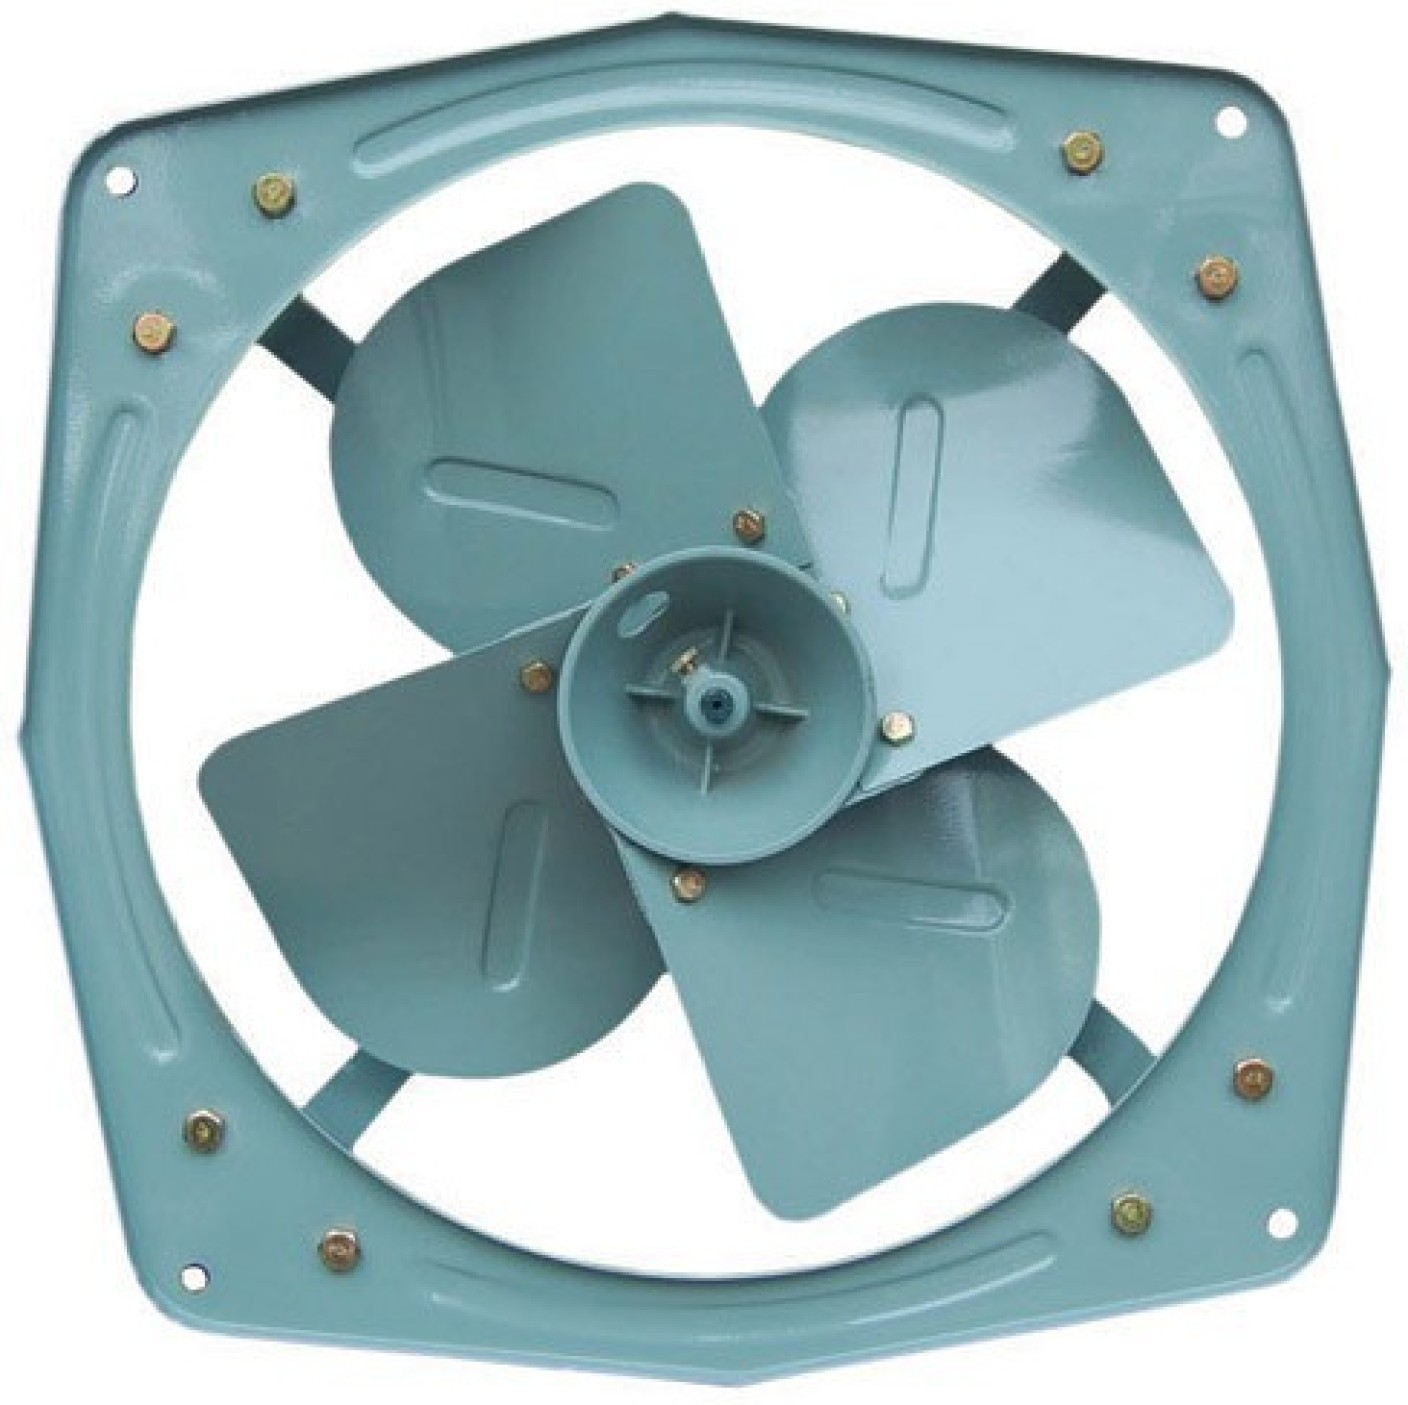 High Speed Fan Blades : Champion inch high speed blade exhaust fan price in